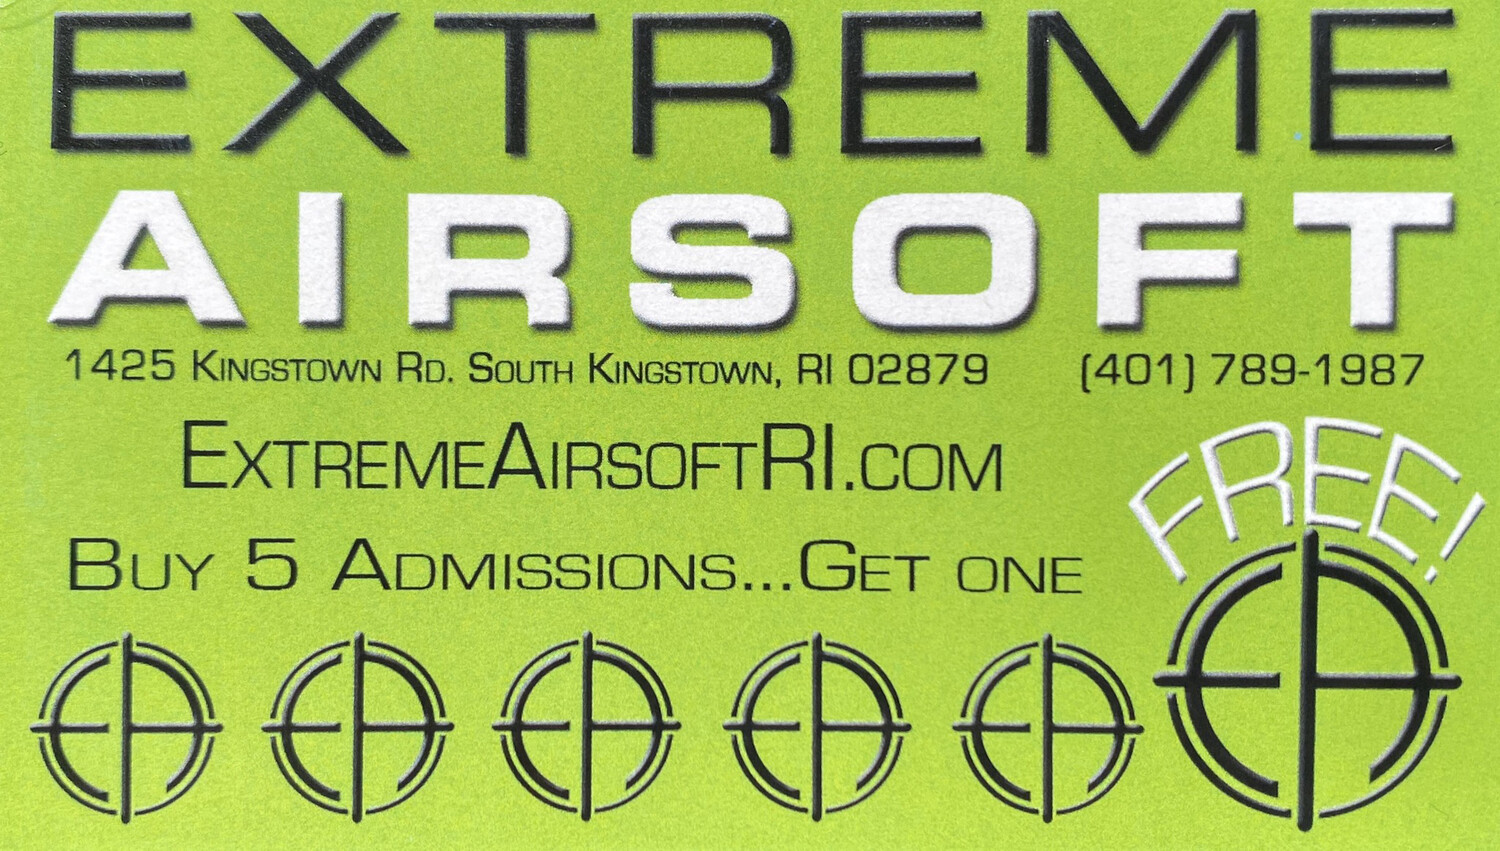 Buy 5 Admissions, Get One Free!